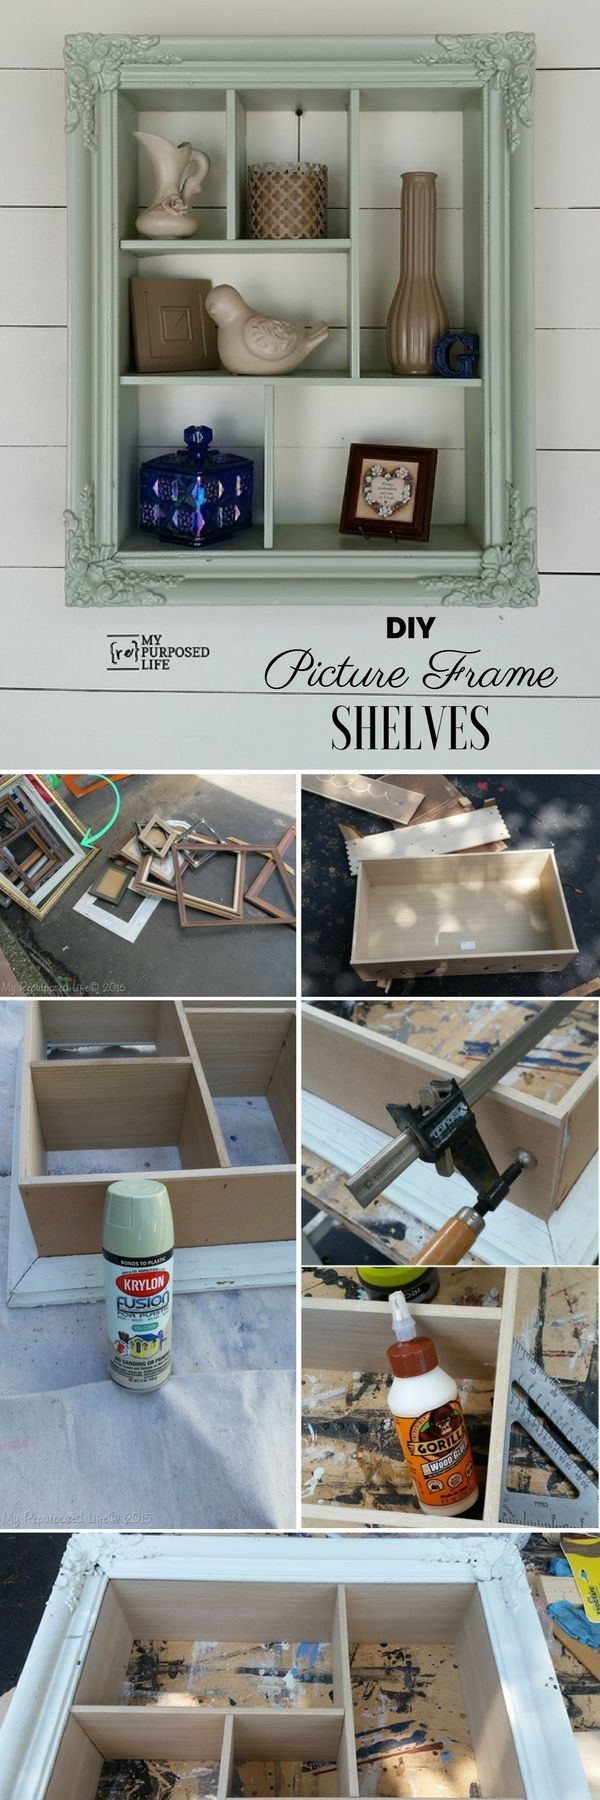 17 best ideas about diy picture frame on pinterest picture frame art diy picture frame crafts and creative photo frames